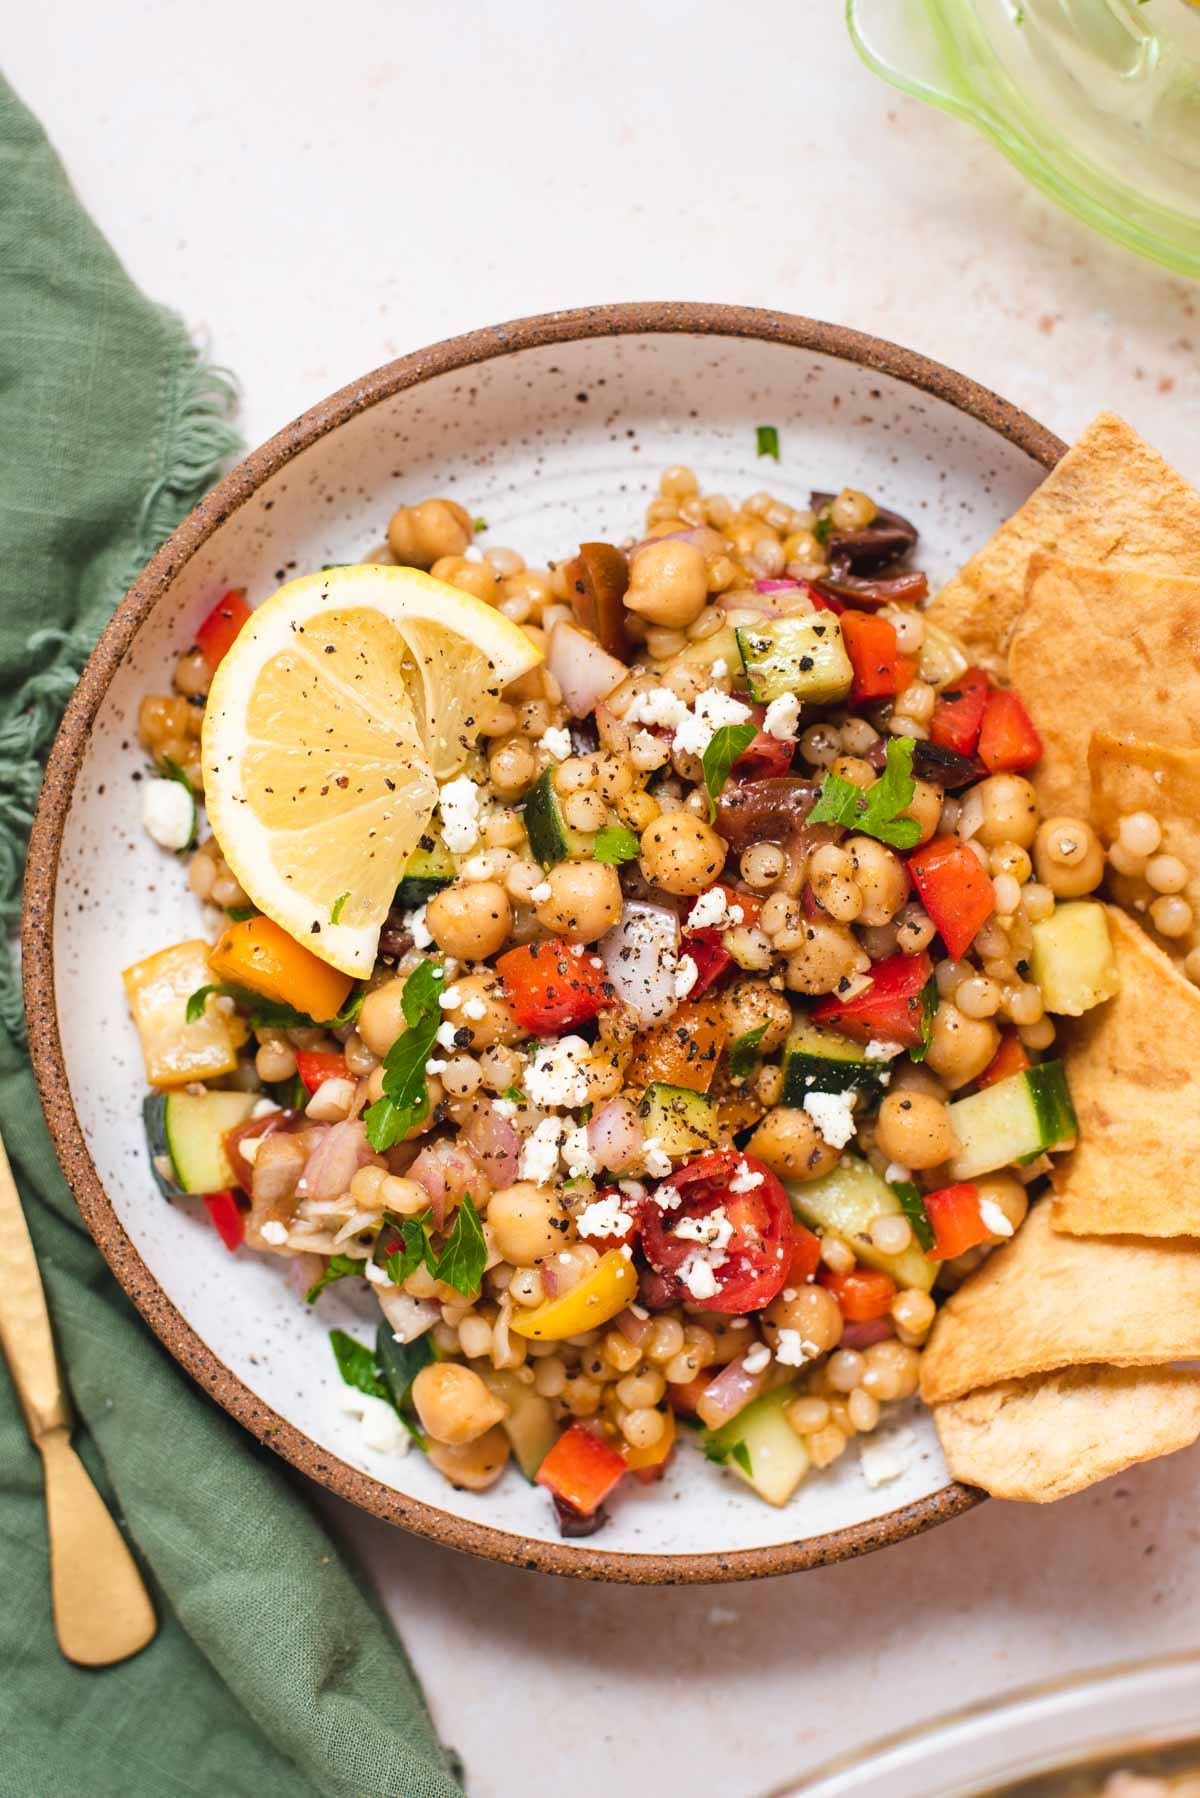 Overhead view of white bowl filled with couscous salad and a lemon wedge